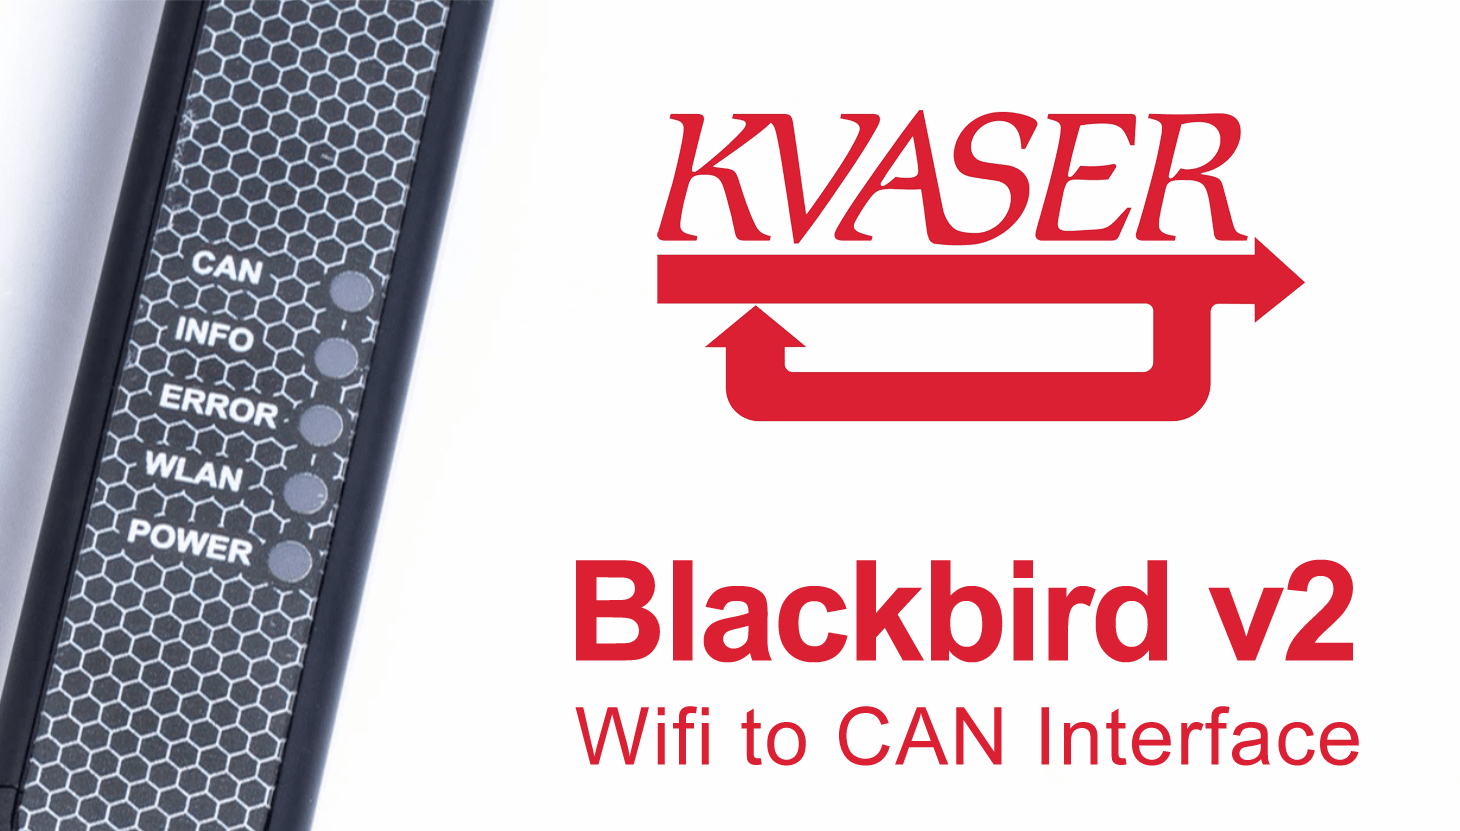 Blackbird v2 Introductory video is now online